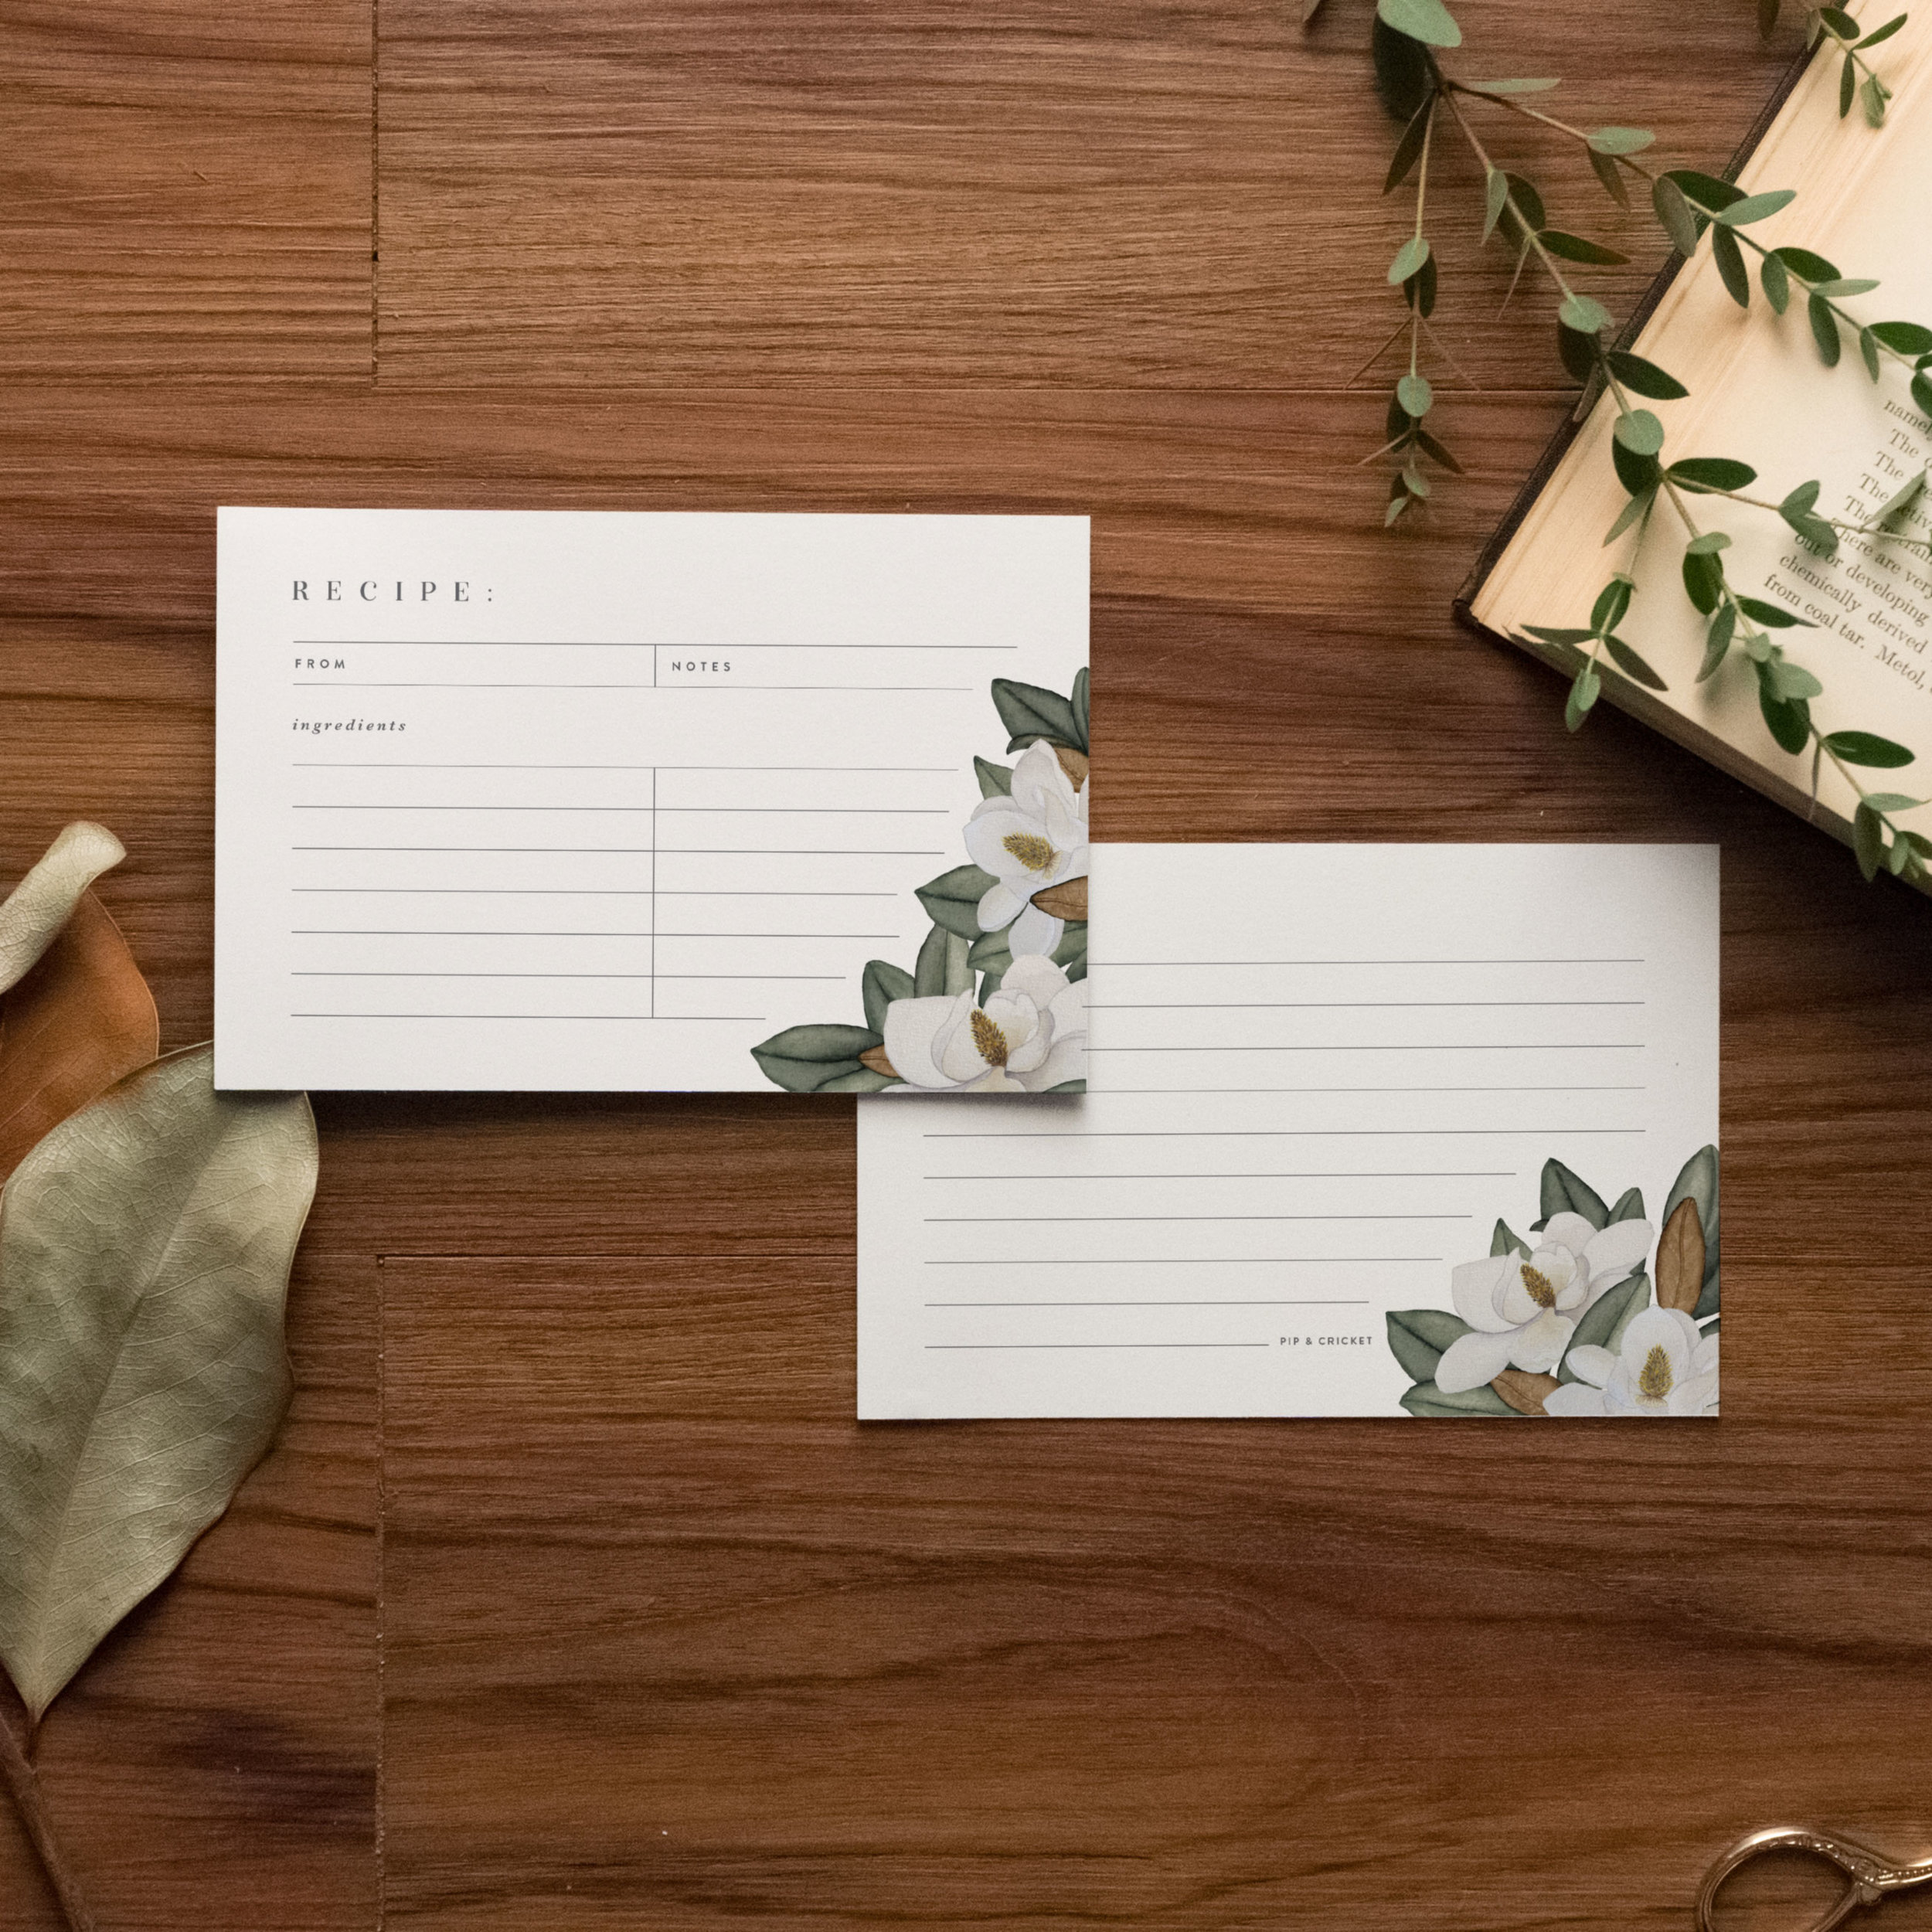 Magnolia Flower Recipe Cards - Starting at $8.00